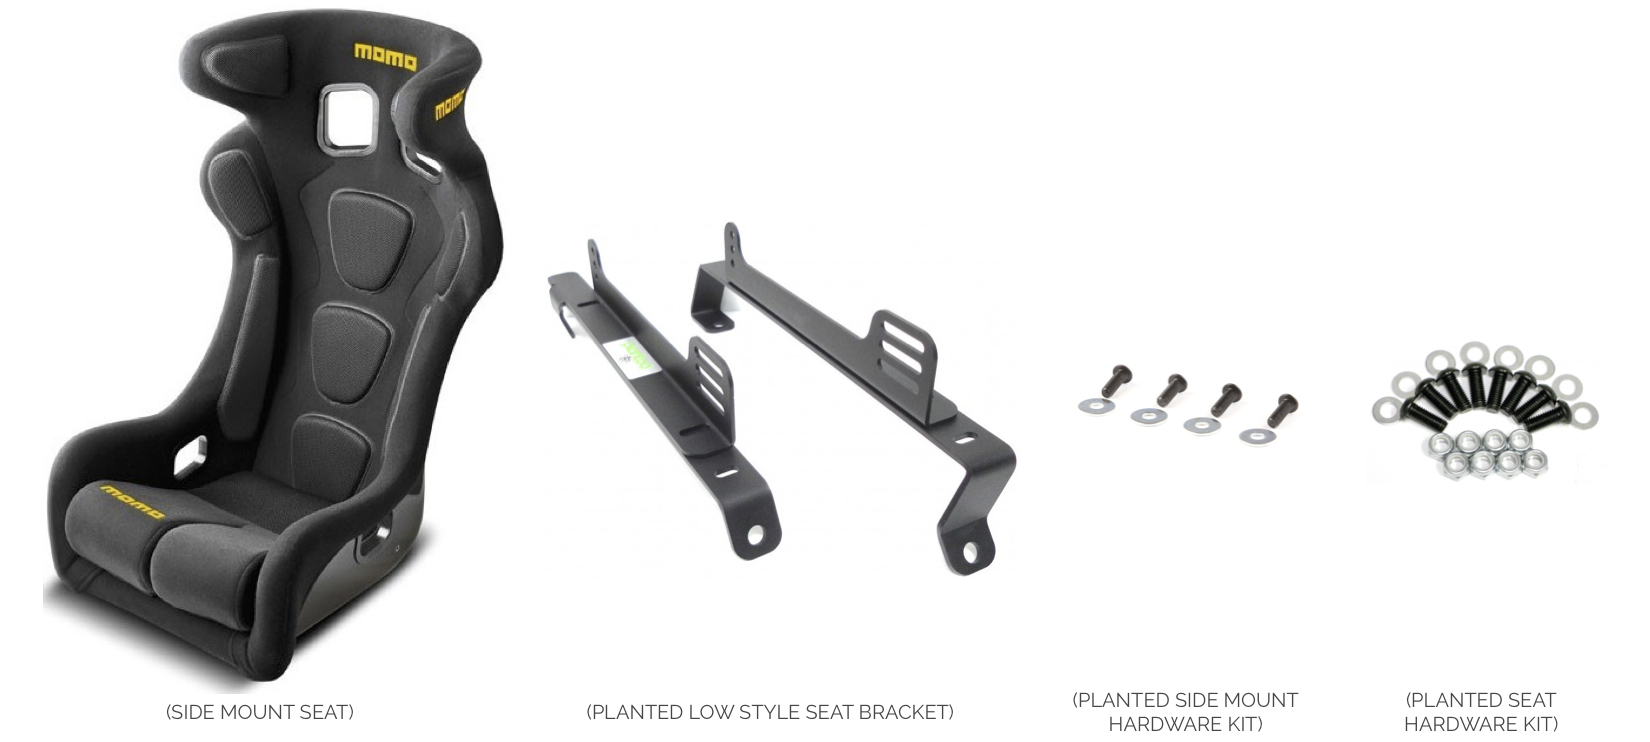 Side Mount Seat Fix Mounted without Sliders - Installation Instructions